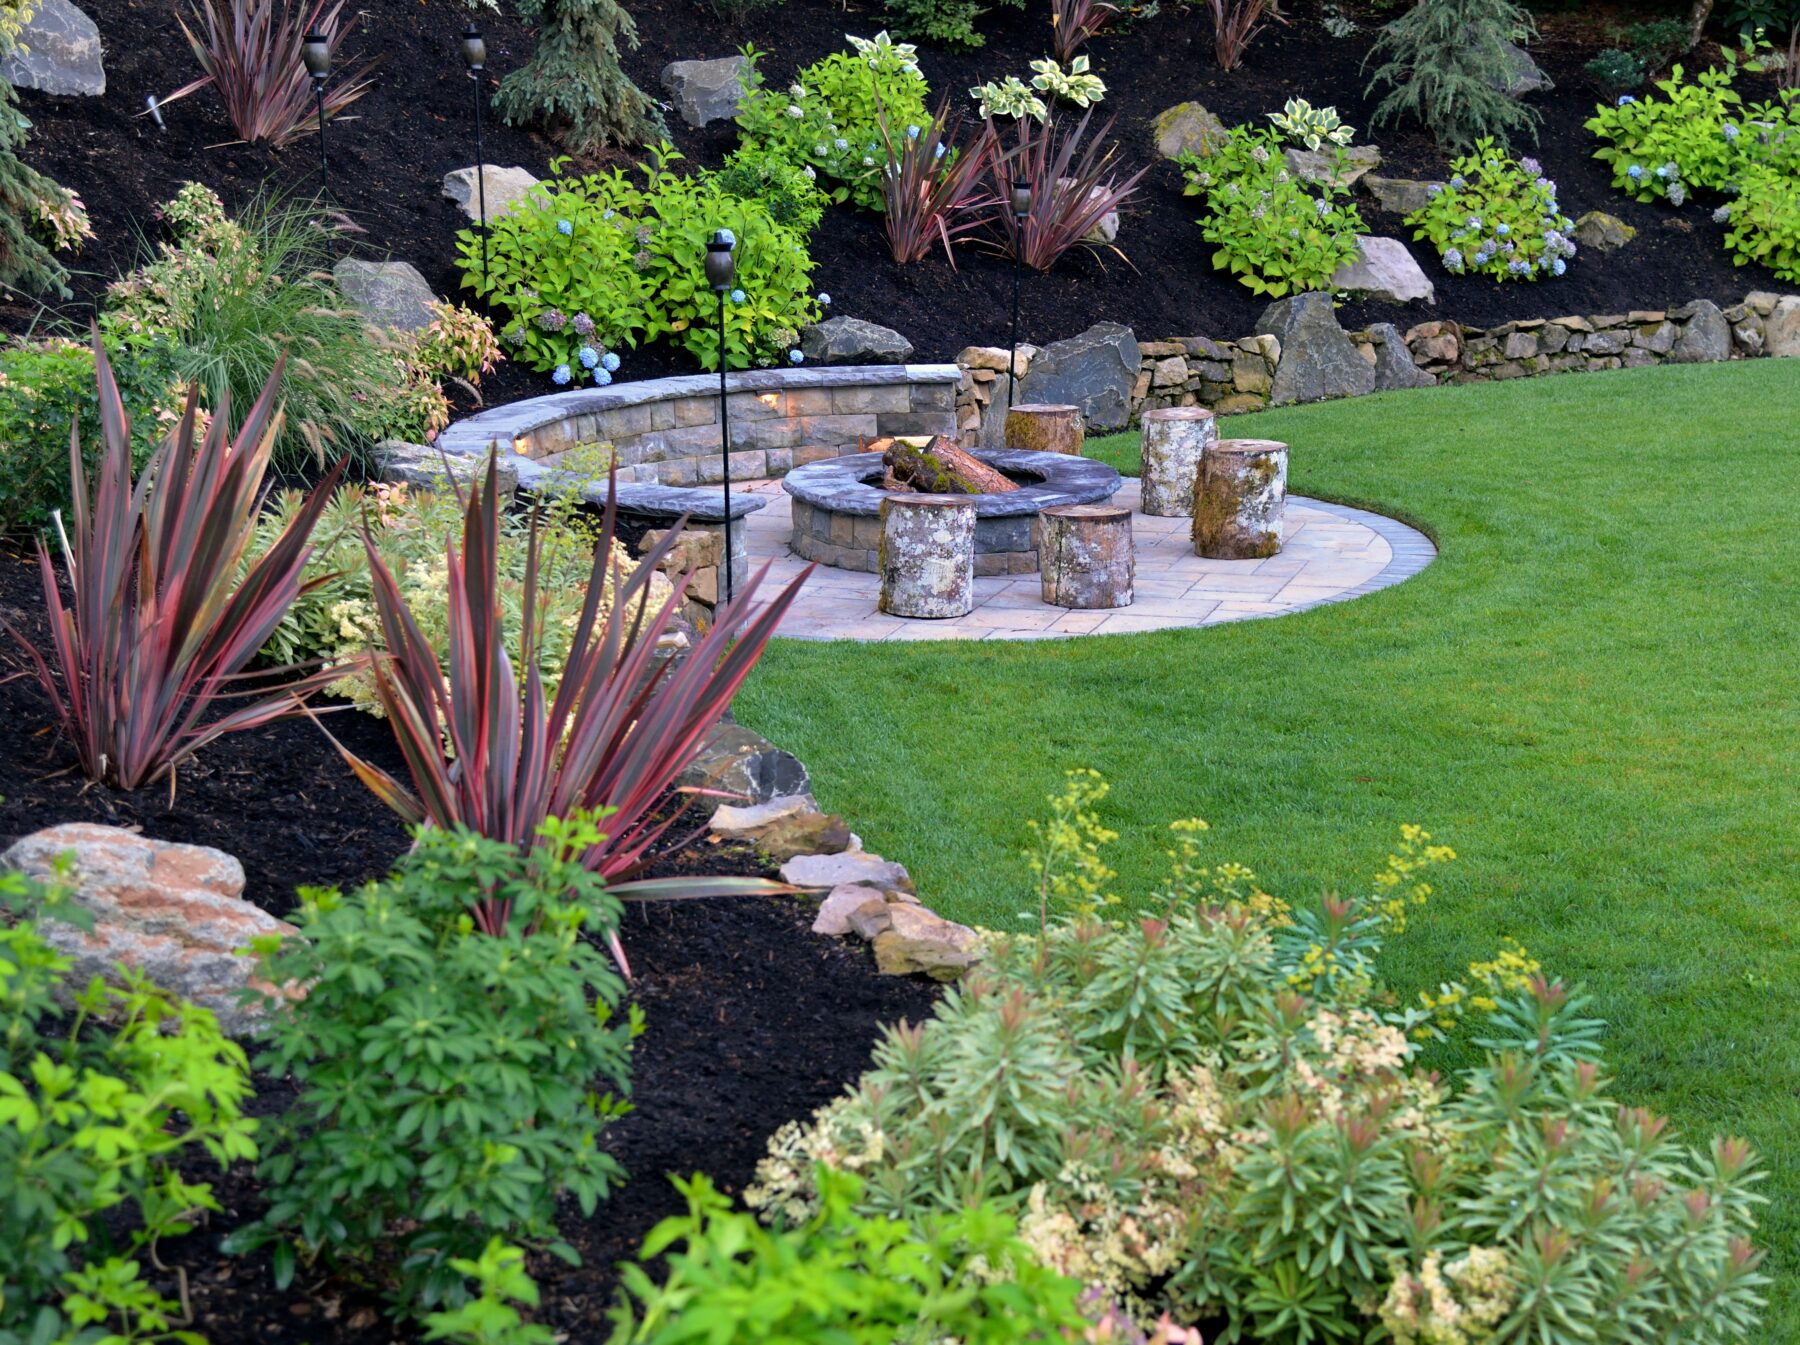 An example of Beaverton landscape design and landscape construction work